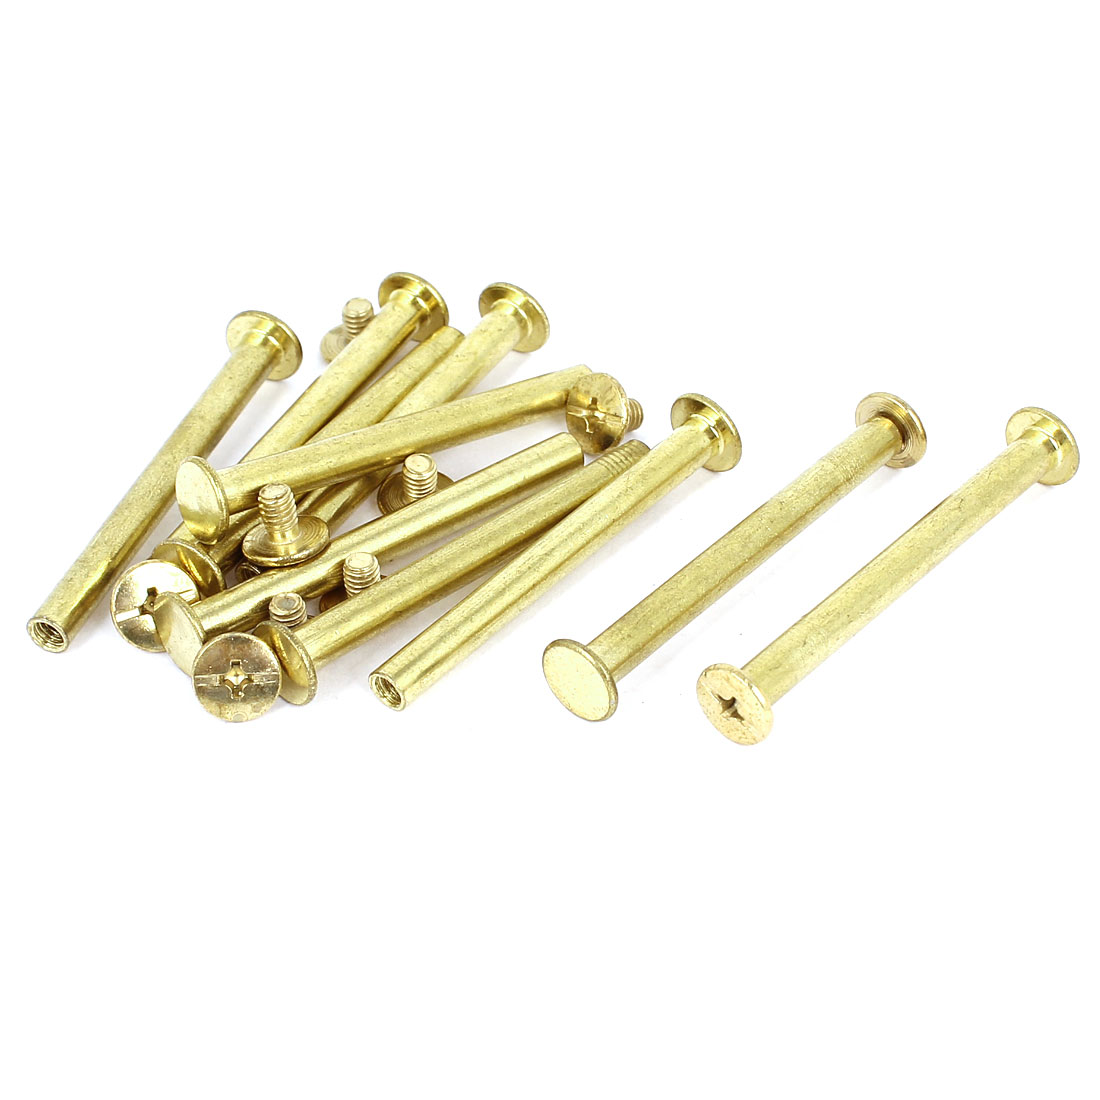 Brass Plated 5x50mm Binding Chicago Screw Post 10pcs for Leather Scrapbook